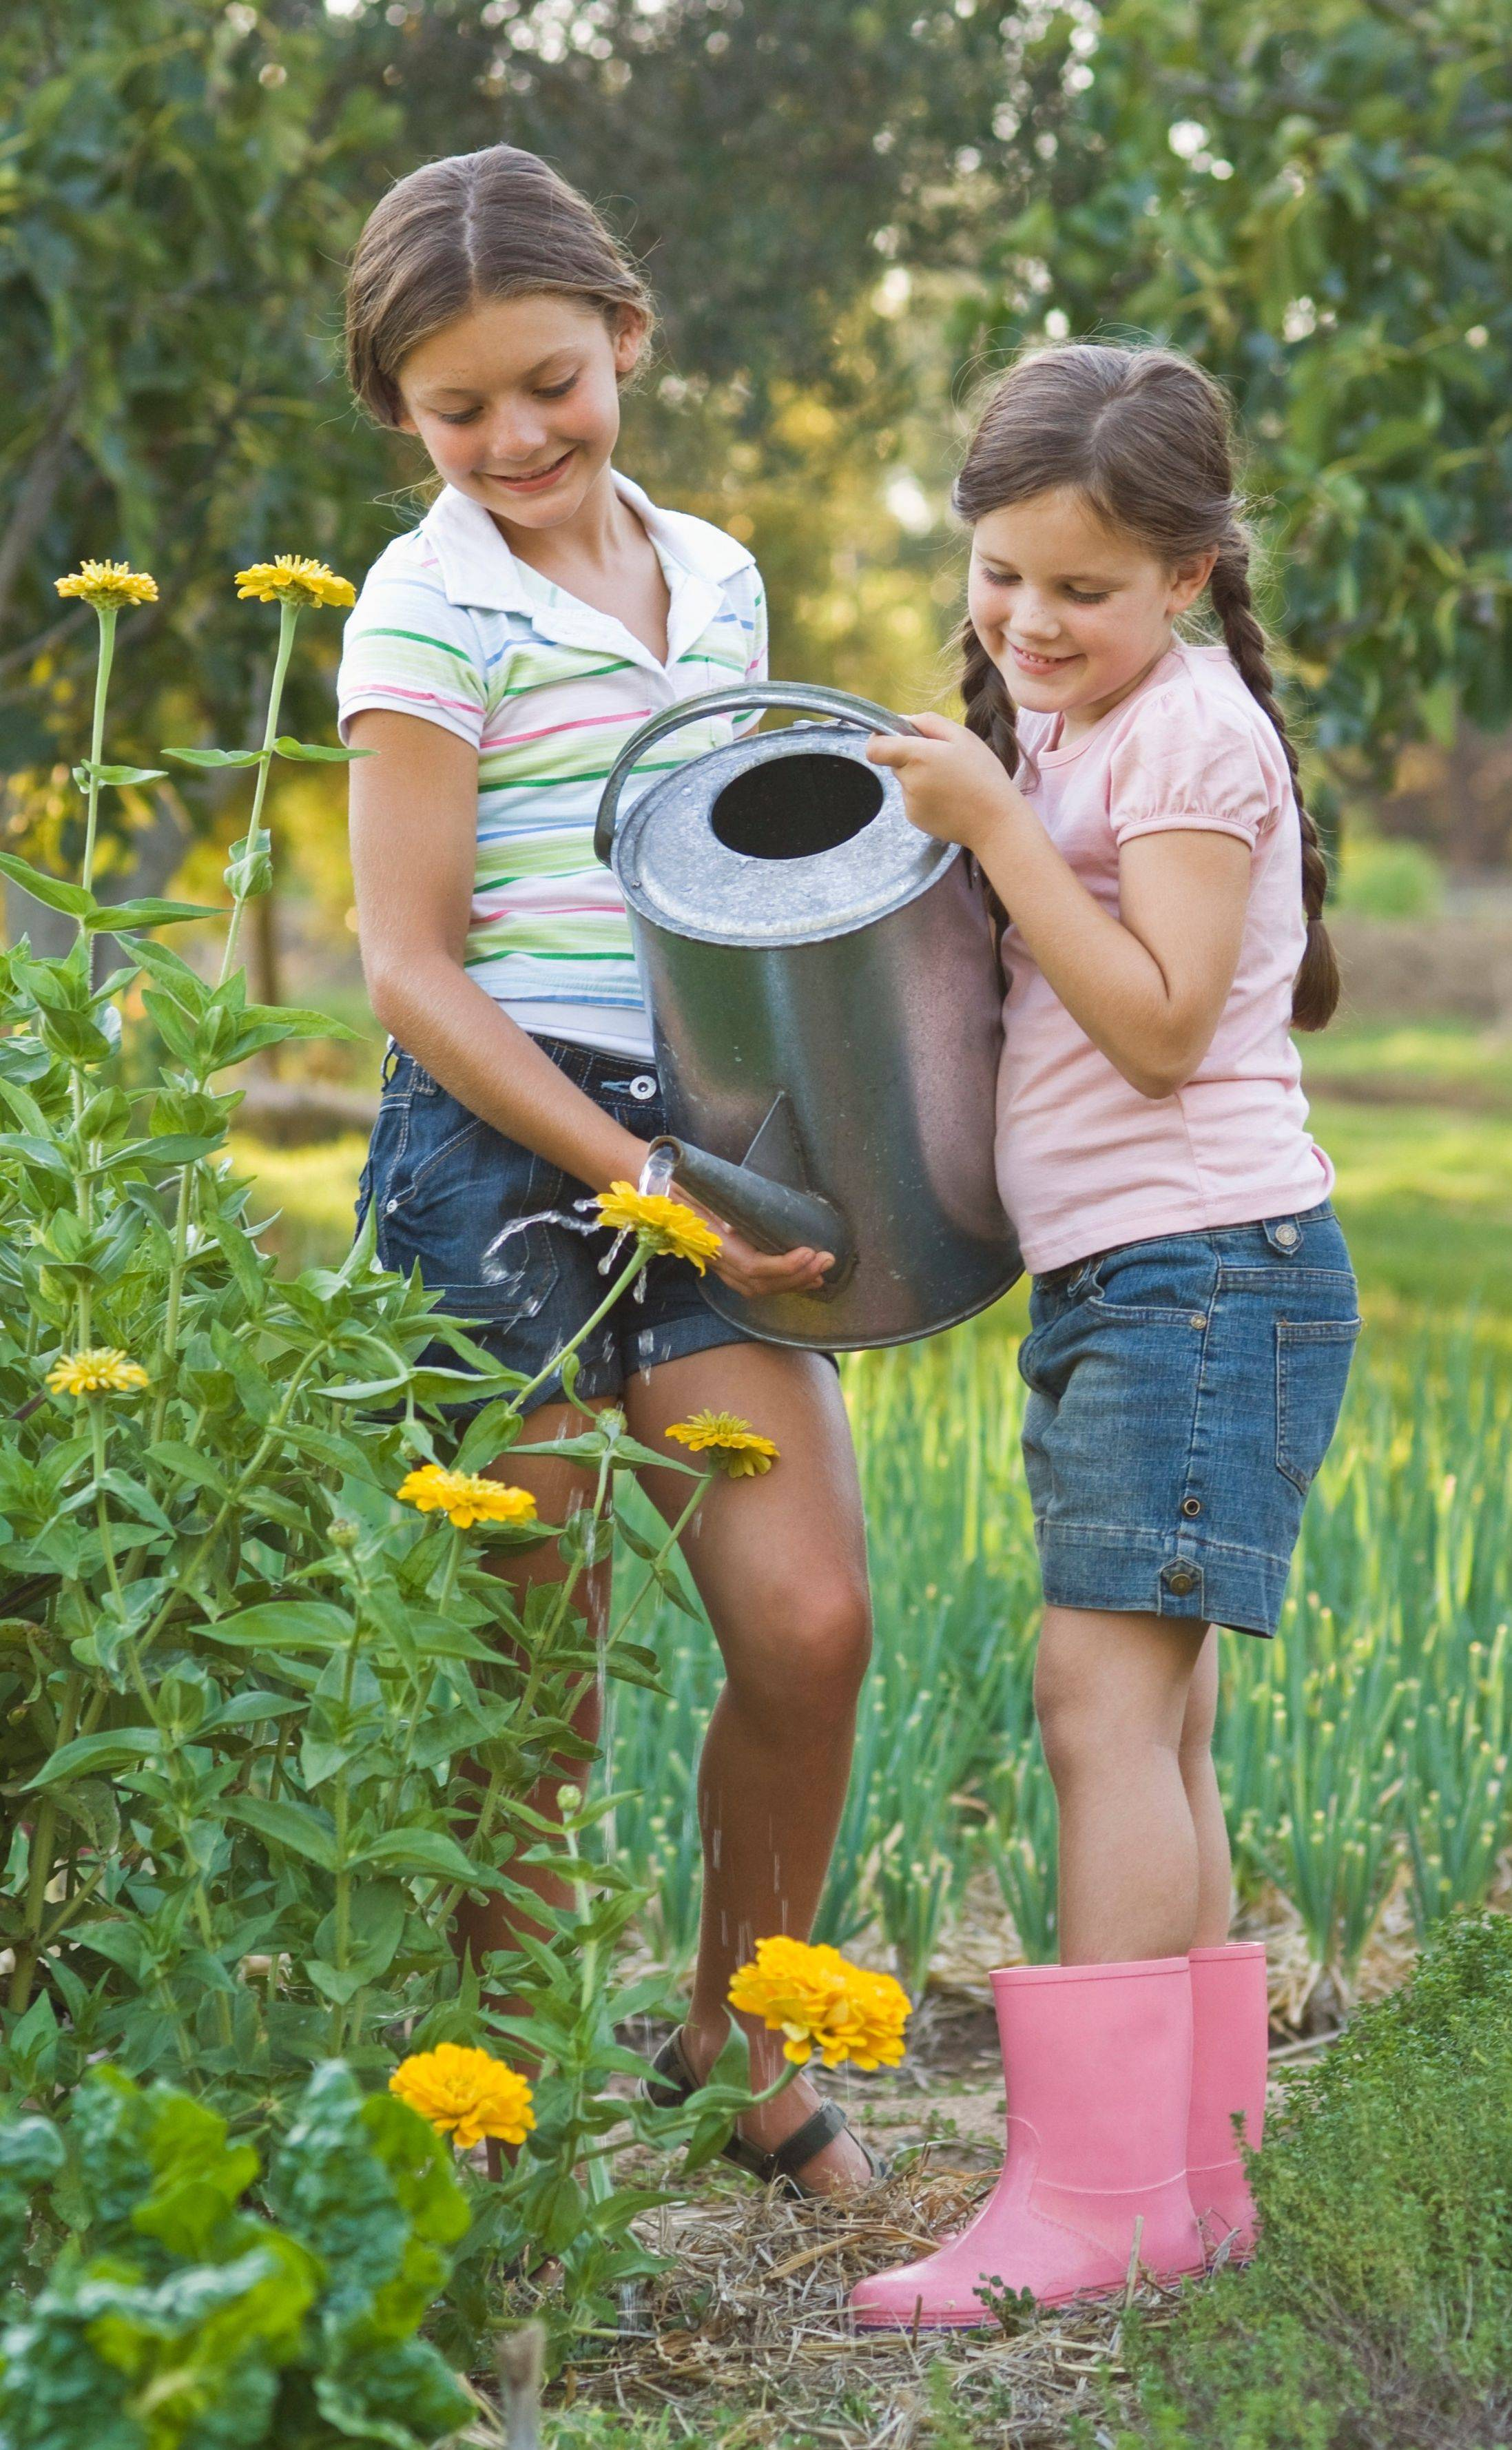 Growing flowers and vegetables with children can teach them valuable life lessons and can help them connect with nature.